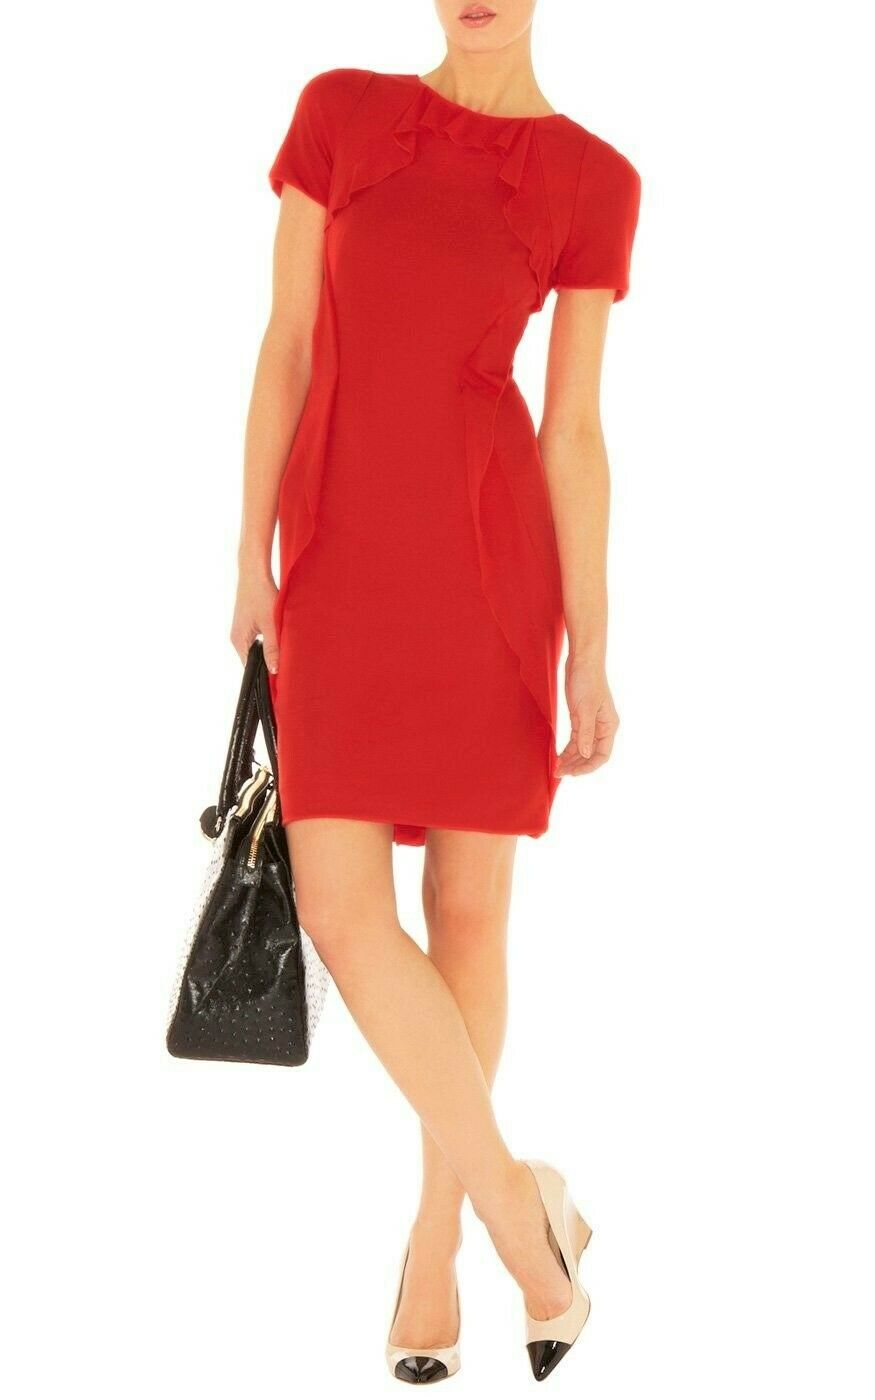 STUNNING KAREN MILLEN rot JERSEY FRILL PENCIL WIGGLE DRESS